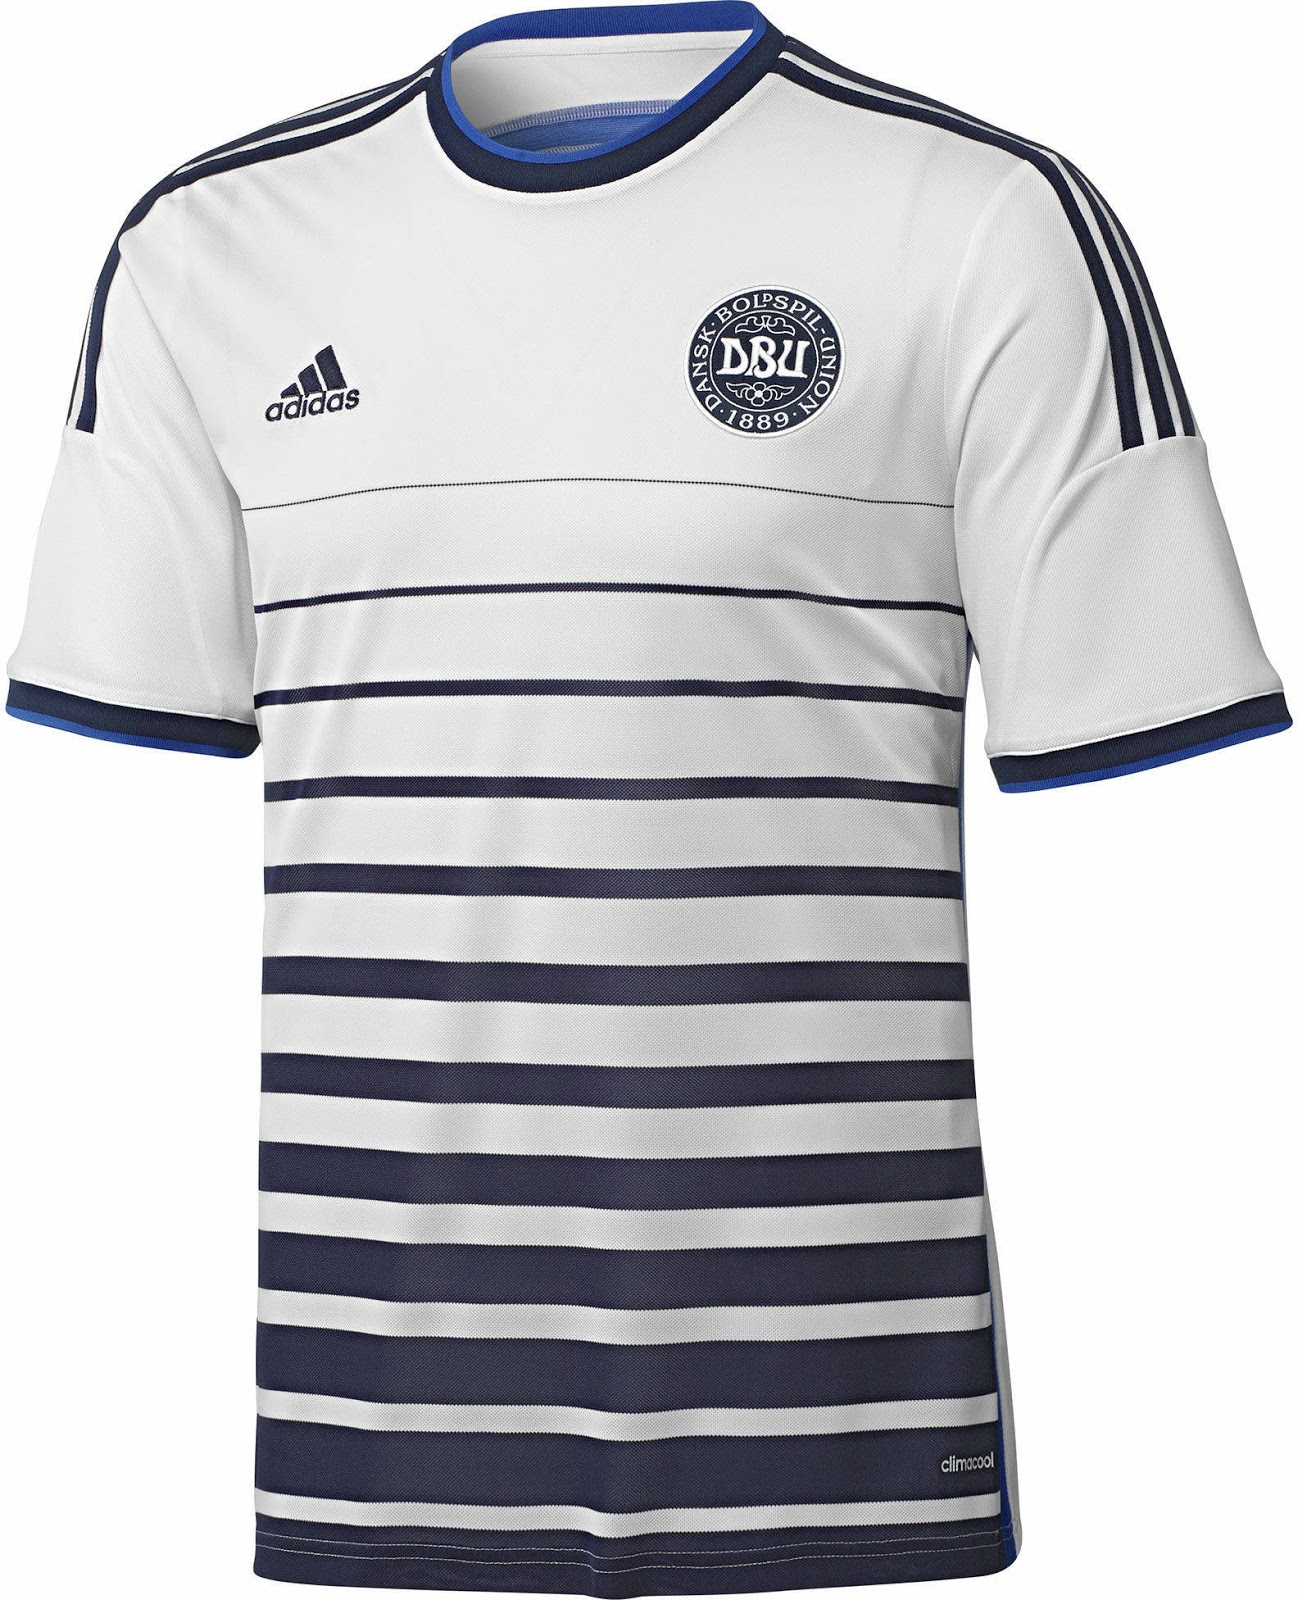 b0f92c578 Wholesale Adidas Denmark 2014 Away Kit Released